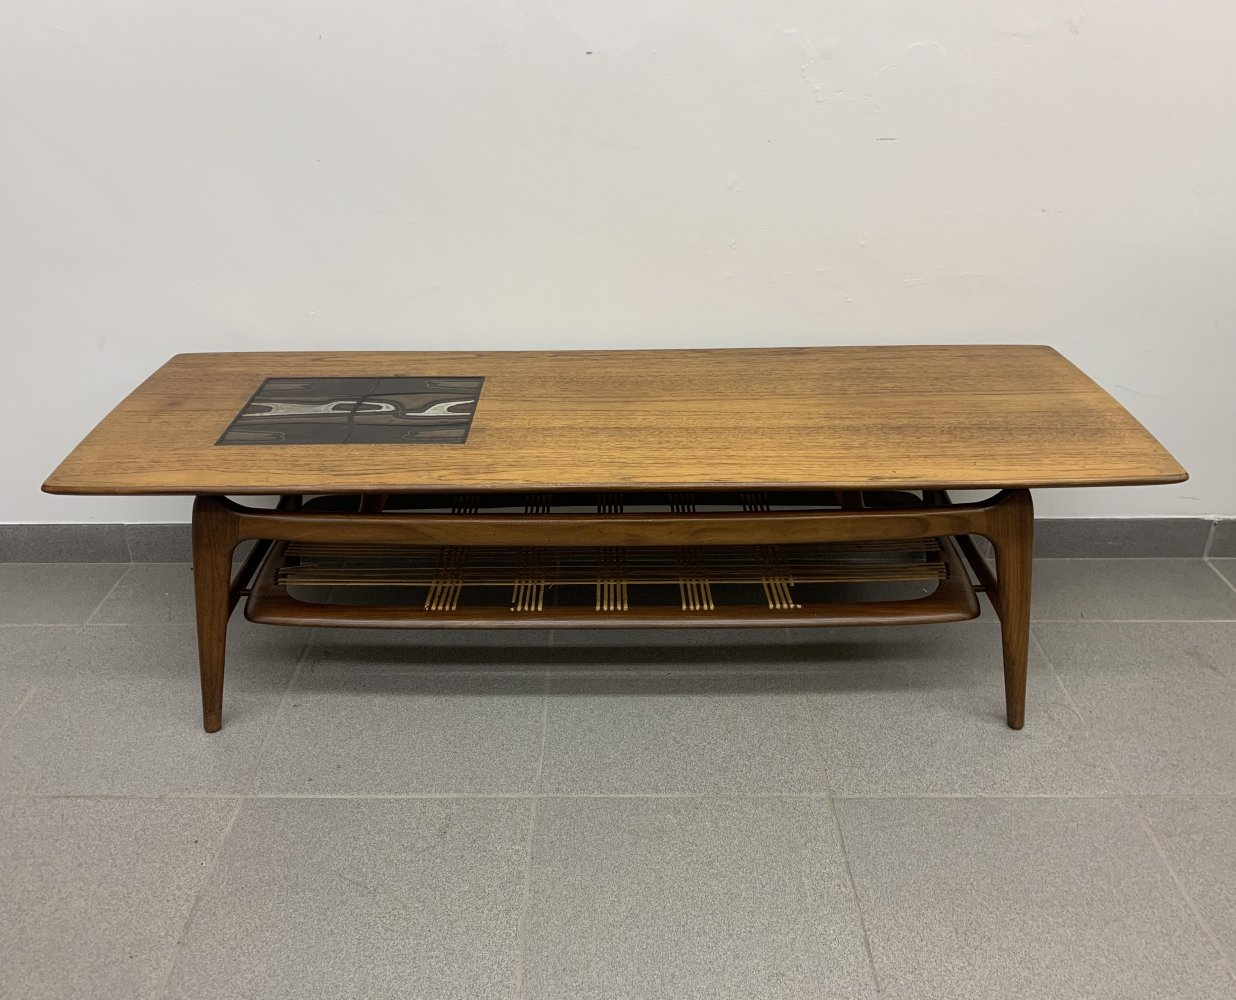 Louis van Teeffelen for Wébé coffee table, 1960